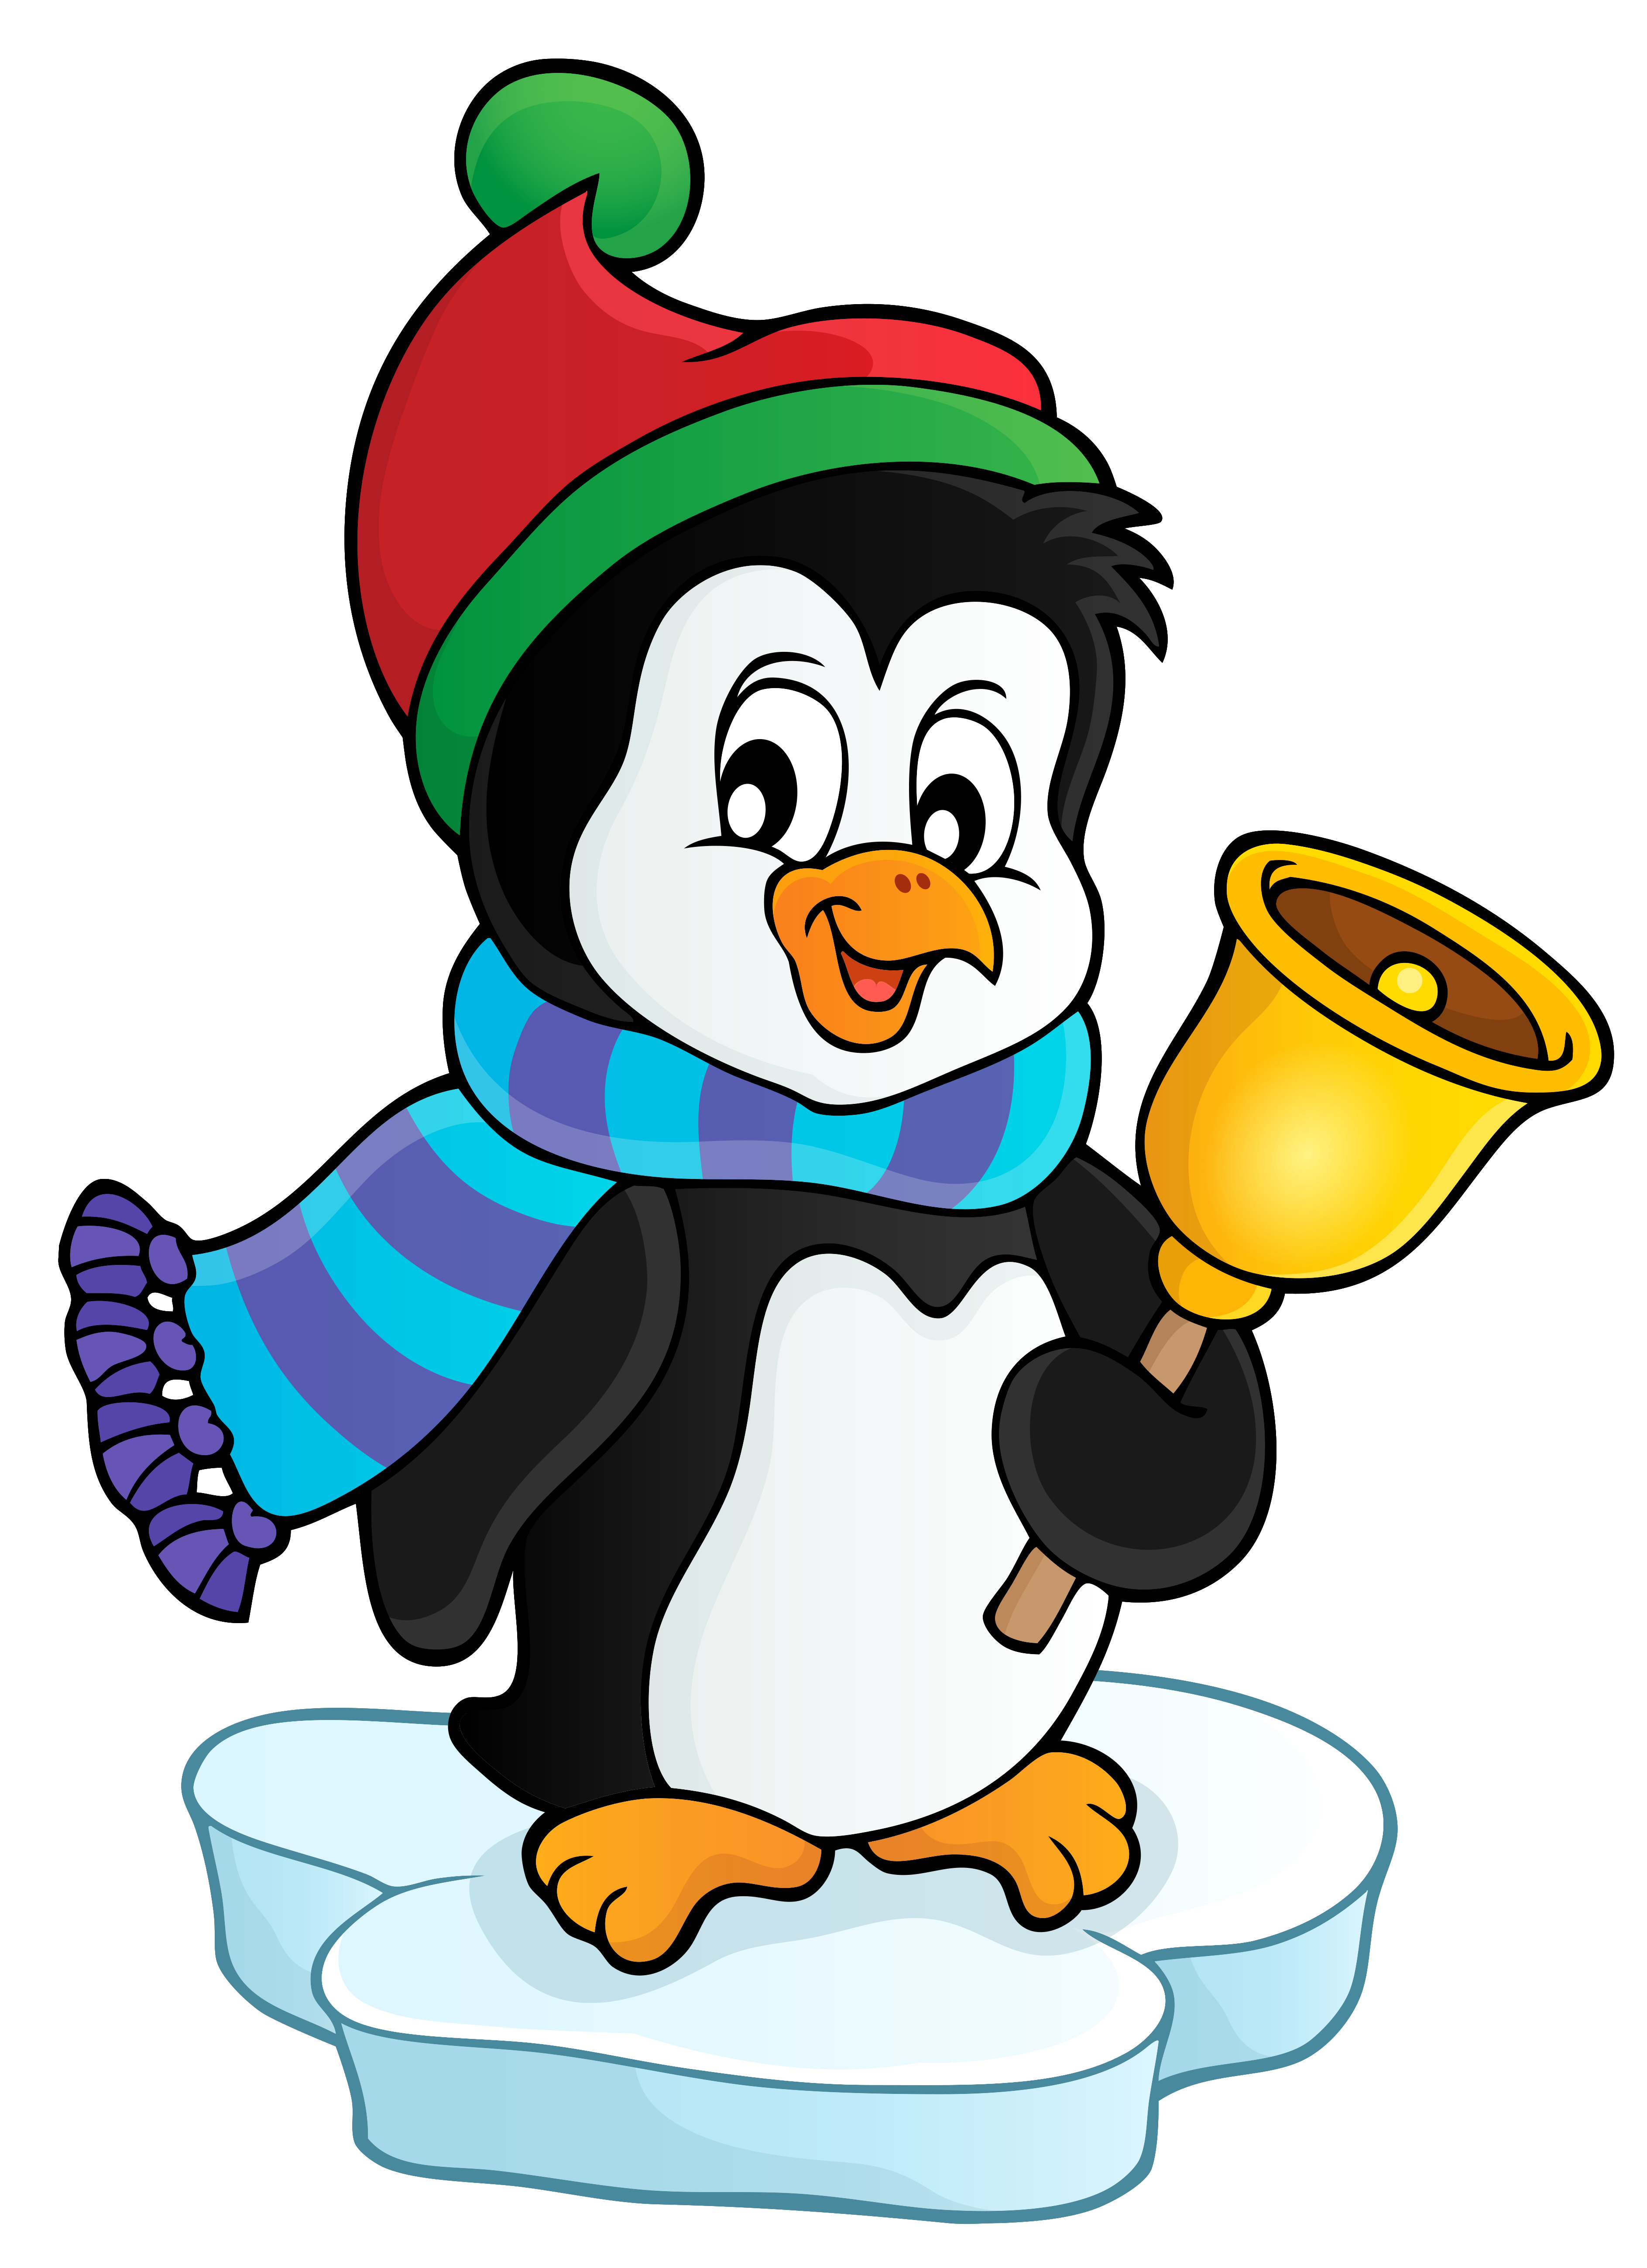 Penguin christmas clipart clip art black and white download Penguin with Bell Transparent PNG Clip Art Image   Gallery ... clip art black and white download